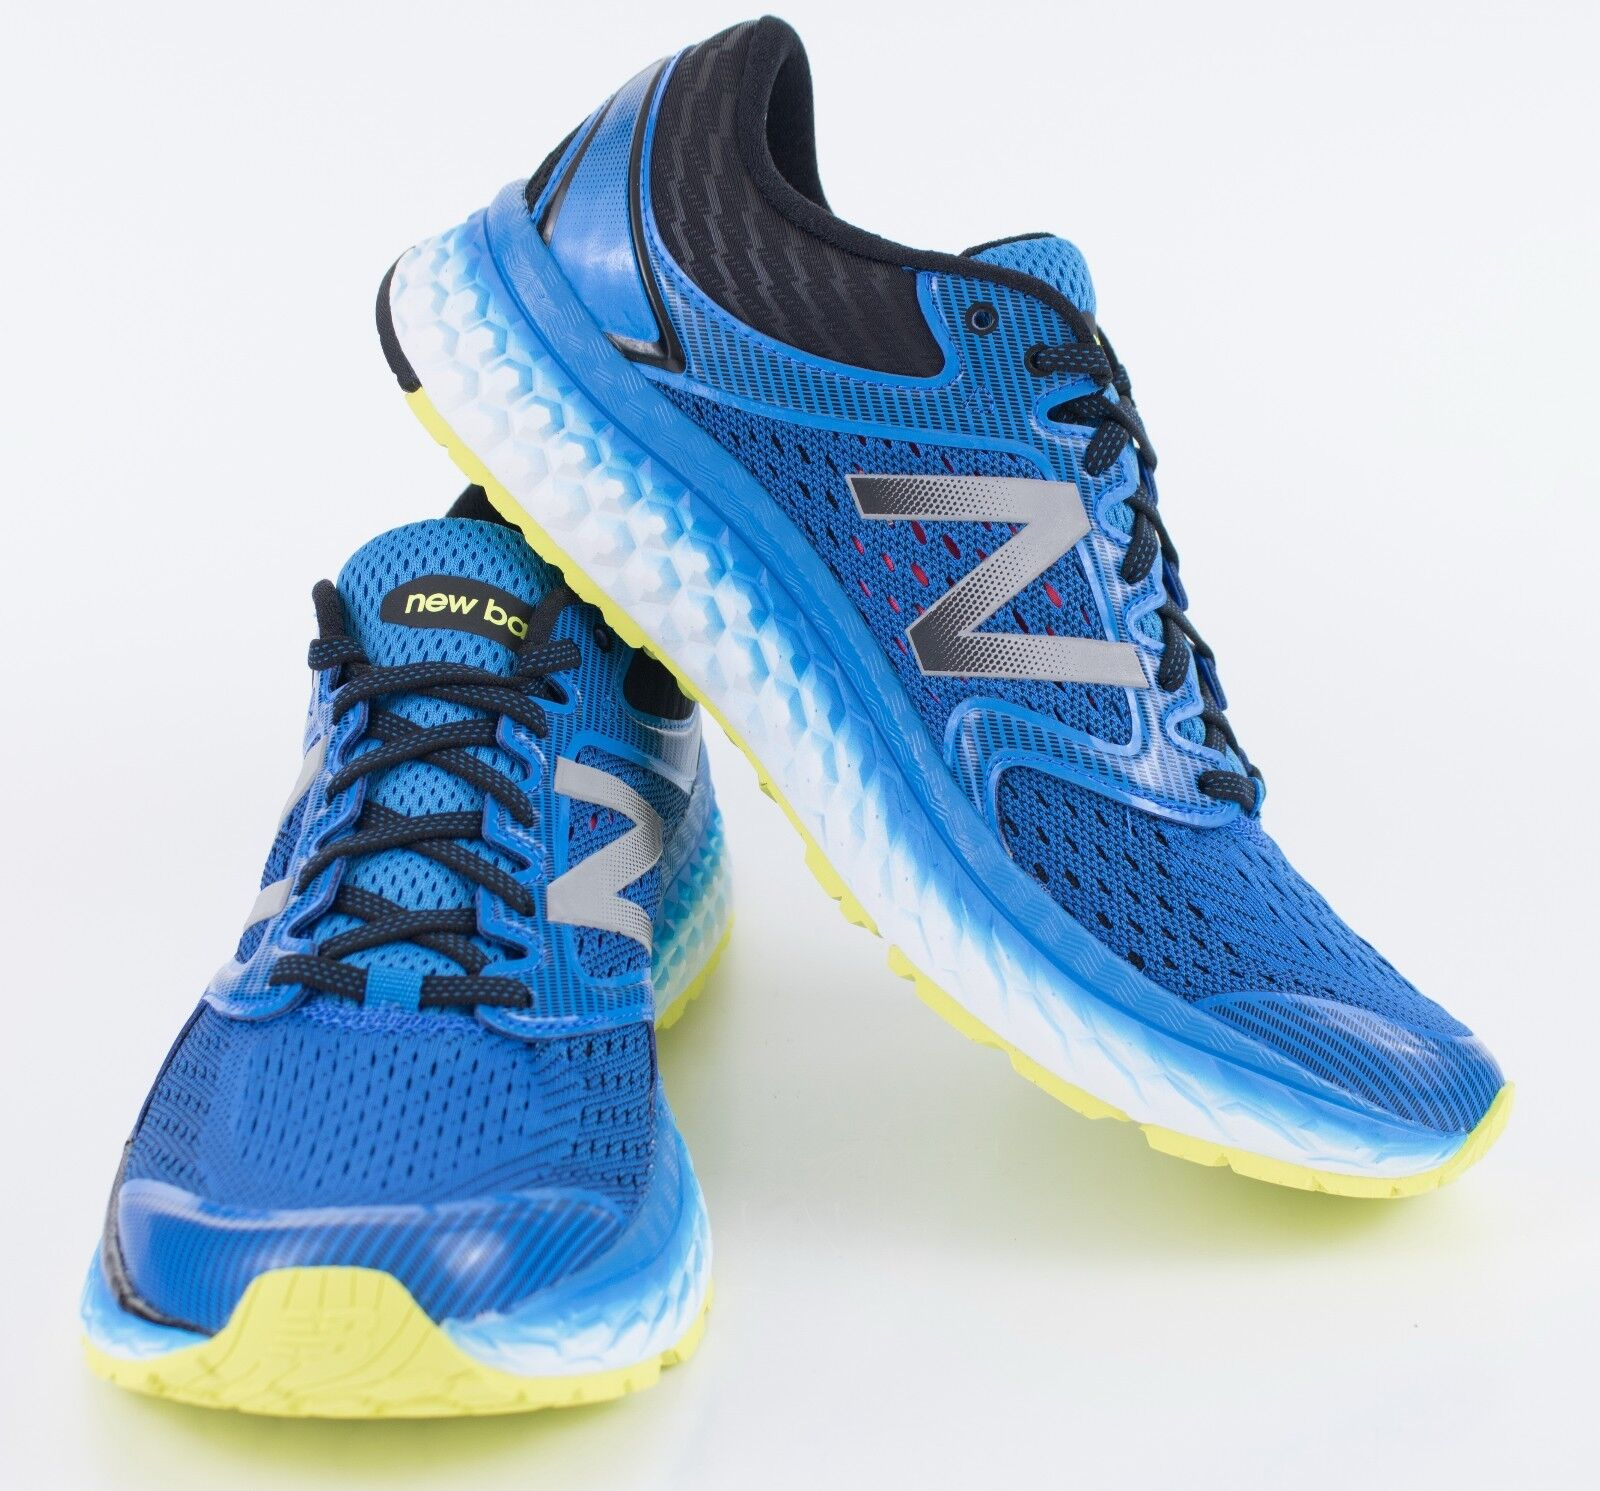 NEW BALANCE MENS M1080BY7 RUNNING Sneakers